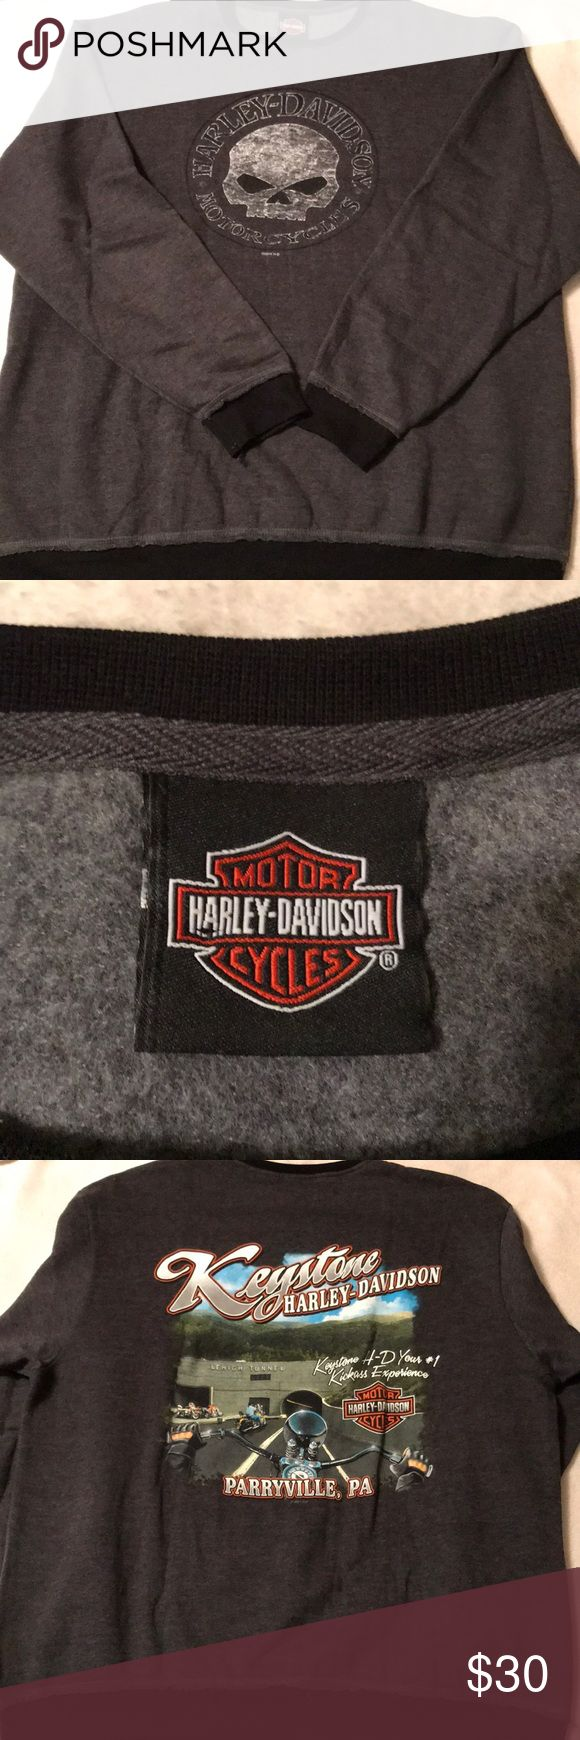 Newish EUC Harley Davidson sweatshirt. Size 1X. EUC newish Harley Davidson distressed look sweatshirt. Size 1X. Only worn a couple times. Stored more than worn! No rips, tears, or stains. Comes from a smoke and pet free home. I have lost a lot of weight and can no longer wear. Offers considered. Bundle and save. Harley-Davidson Tops Sweatshirts & Hoodies